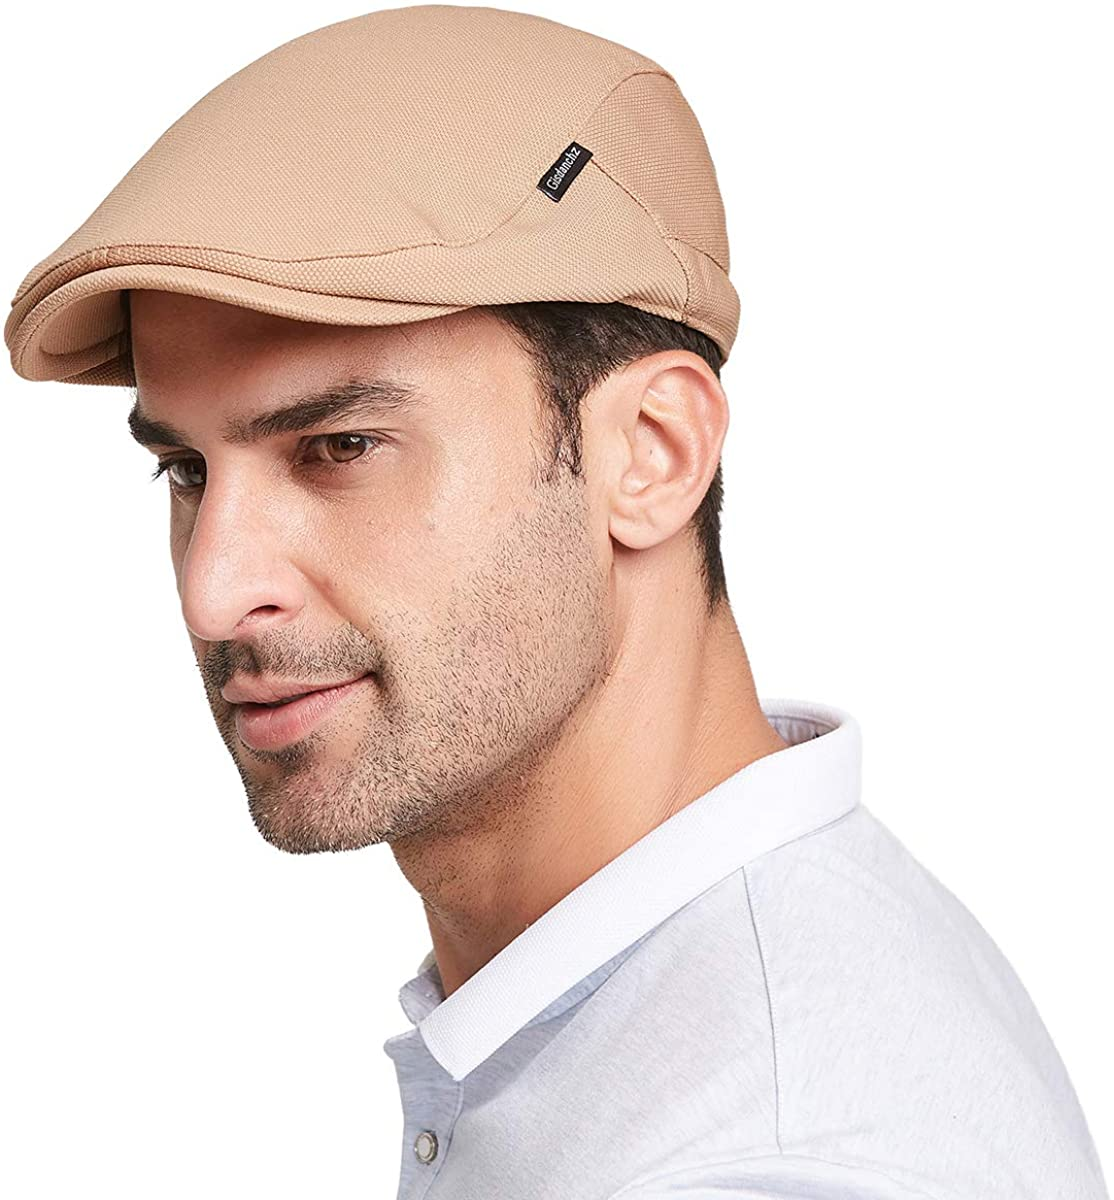 Gisdanchz Men's Newsboy Caps with Satin Lining